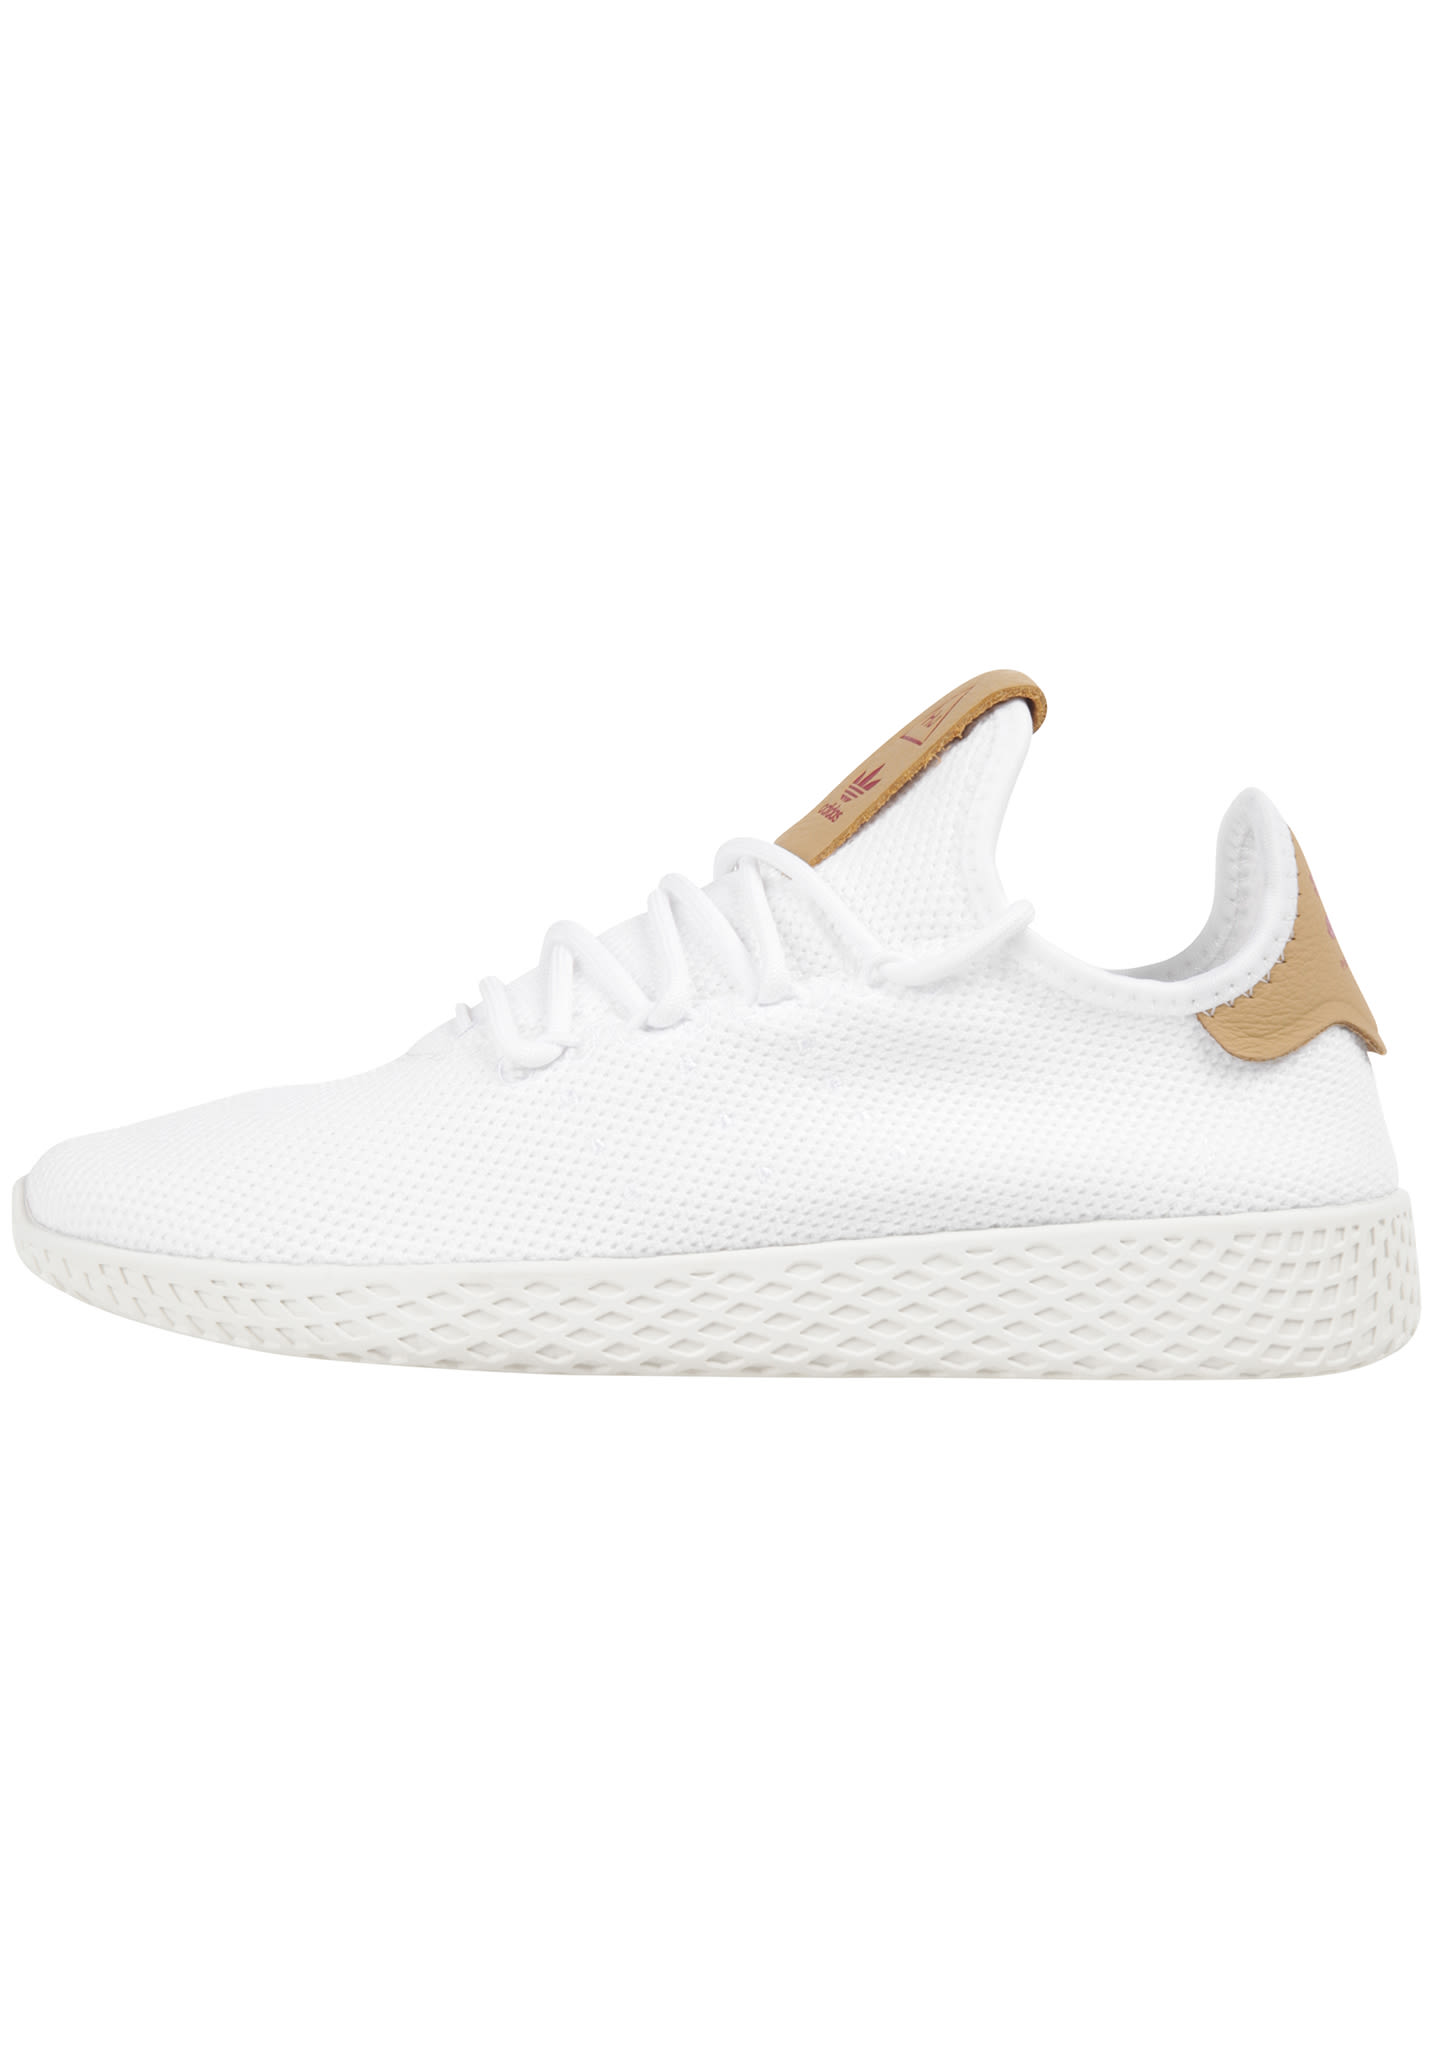 adidas originals damen sneakers pharrell williams tennis hu